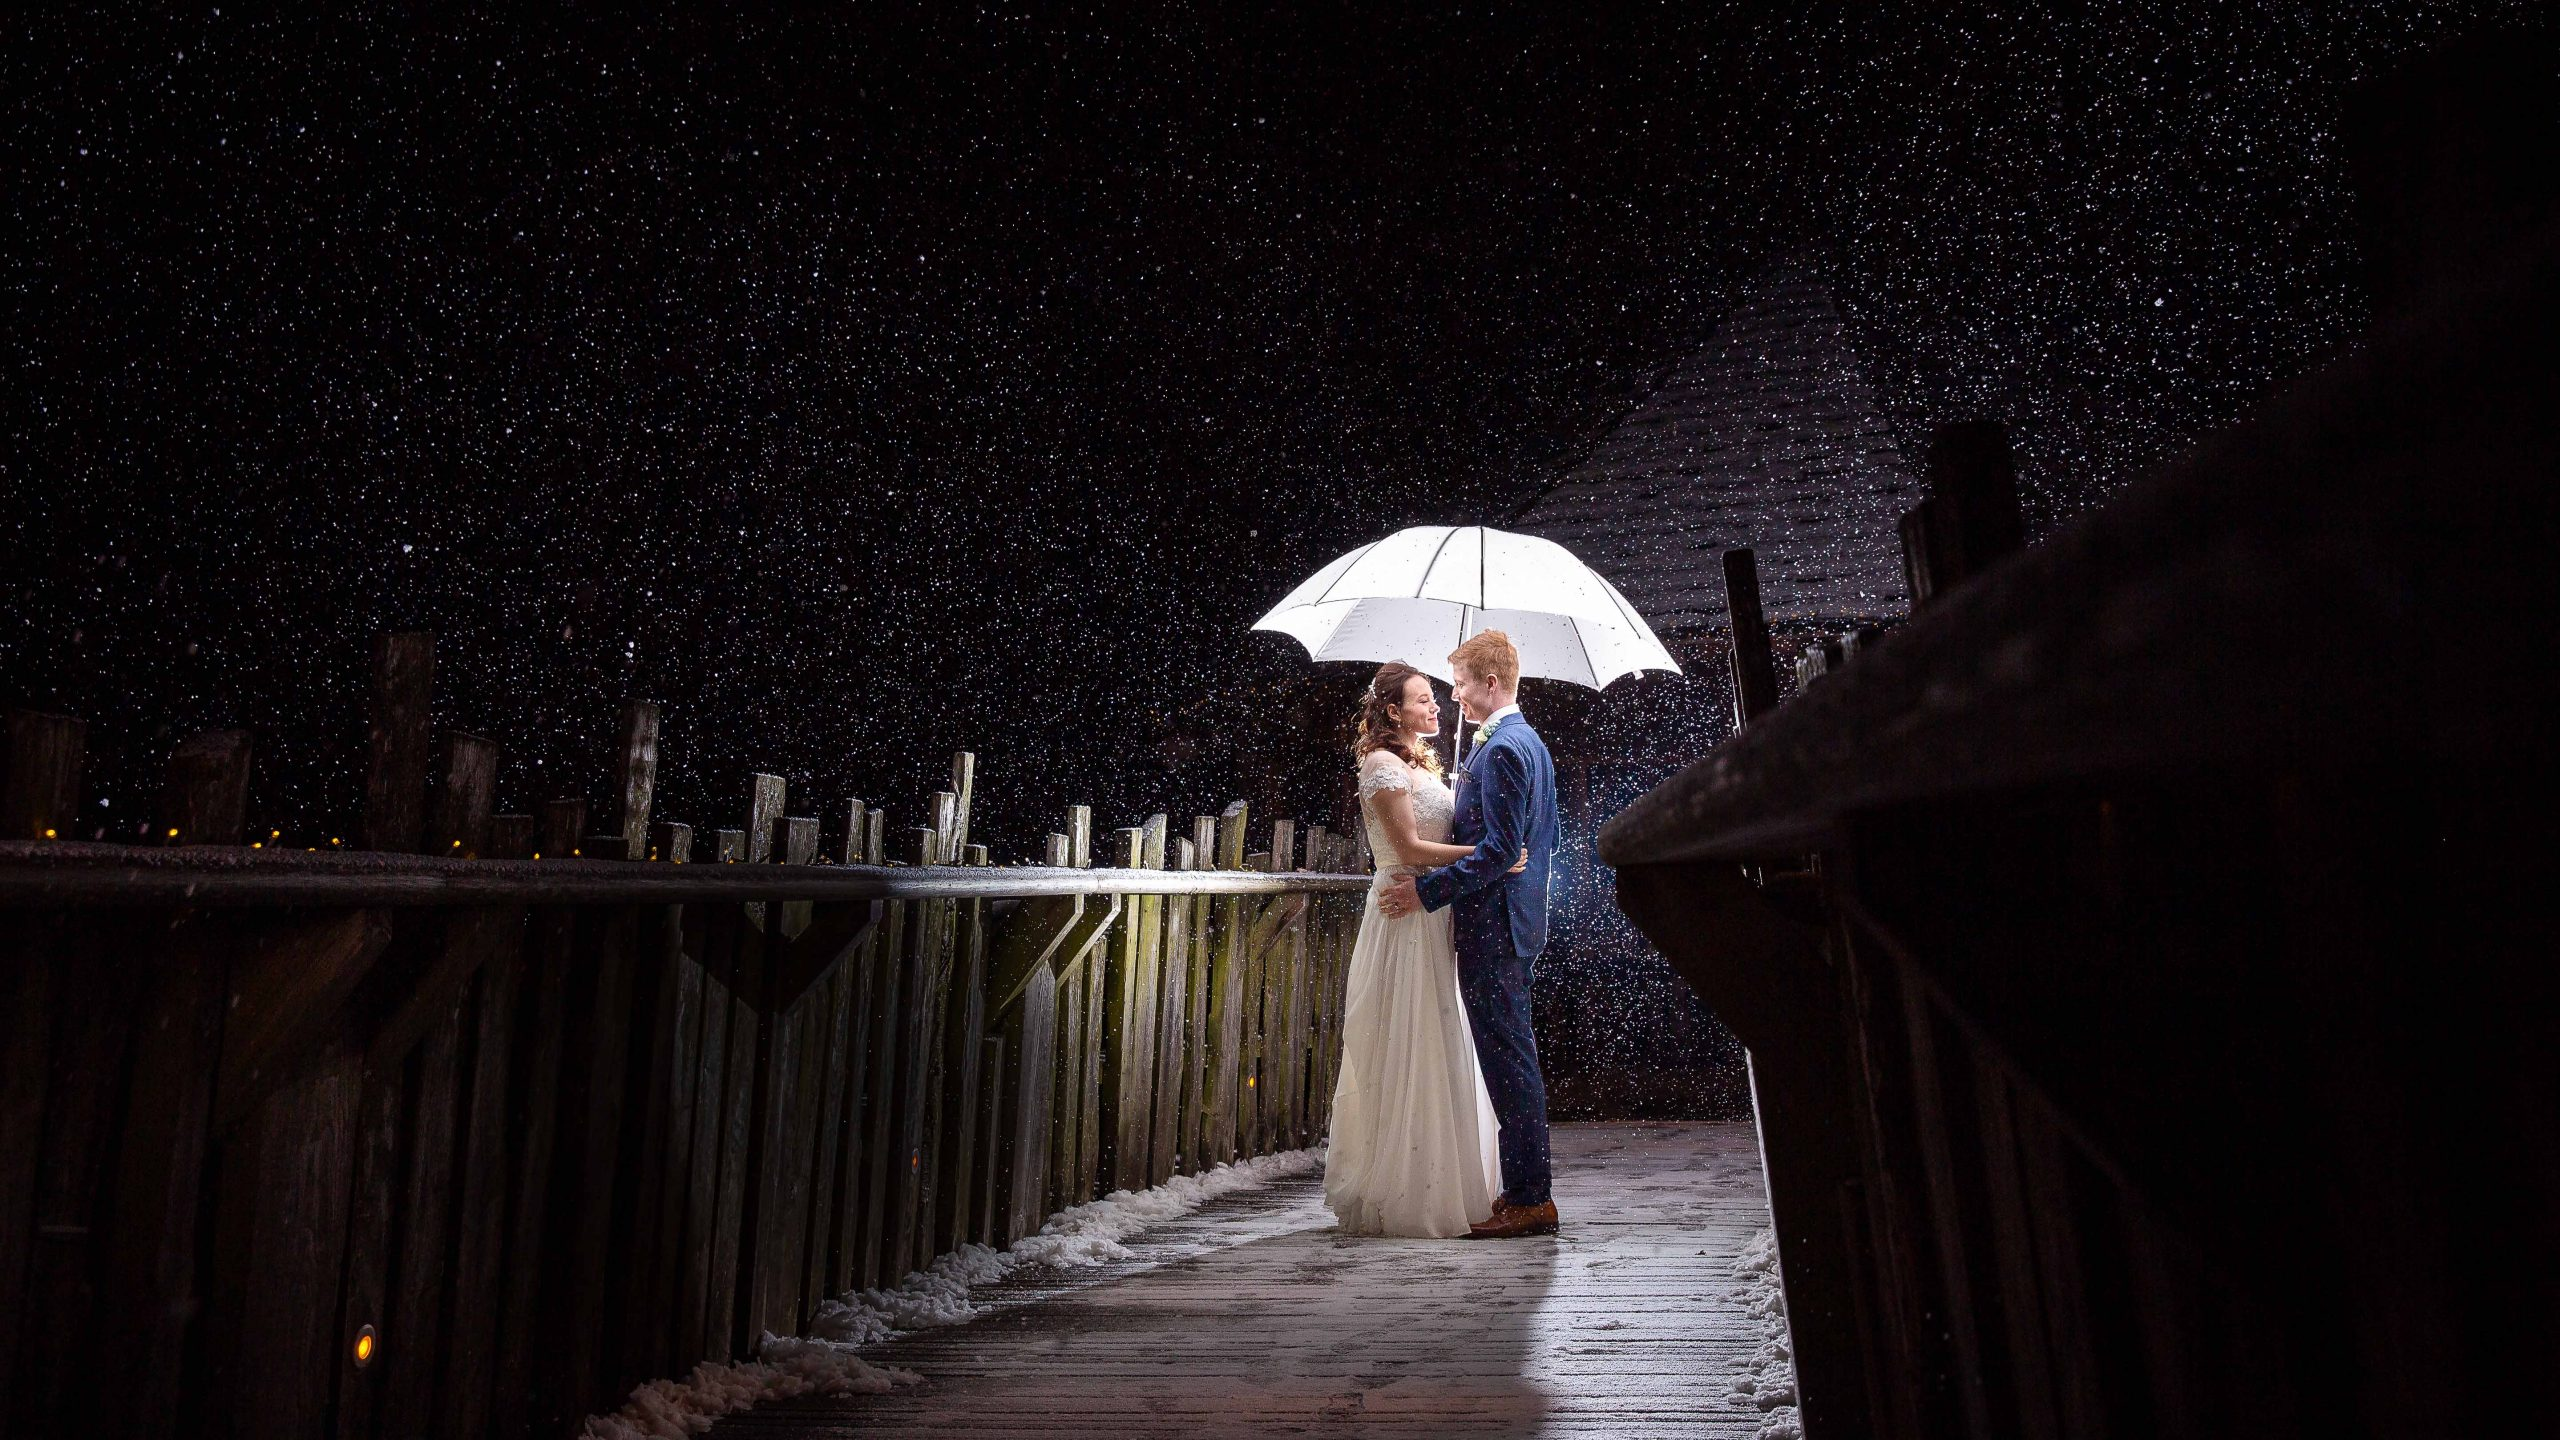 Wedding Photography at the Tree House, Alnwick